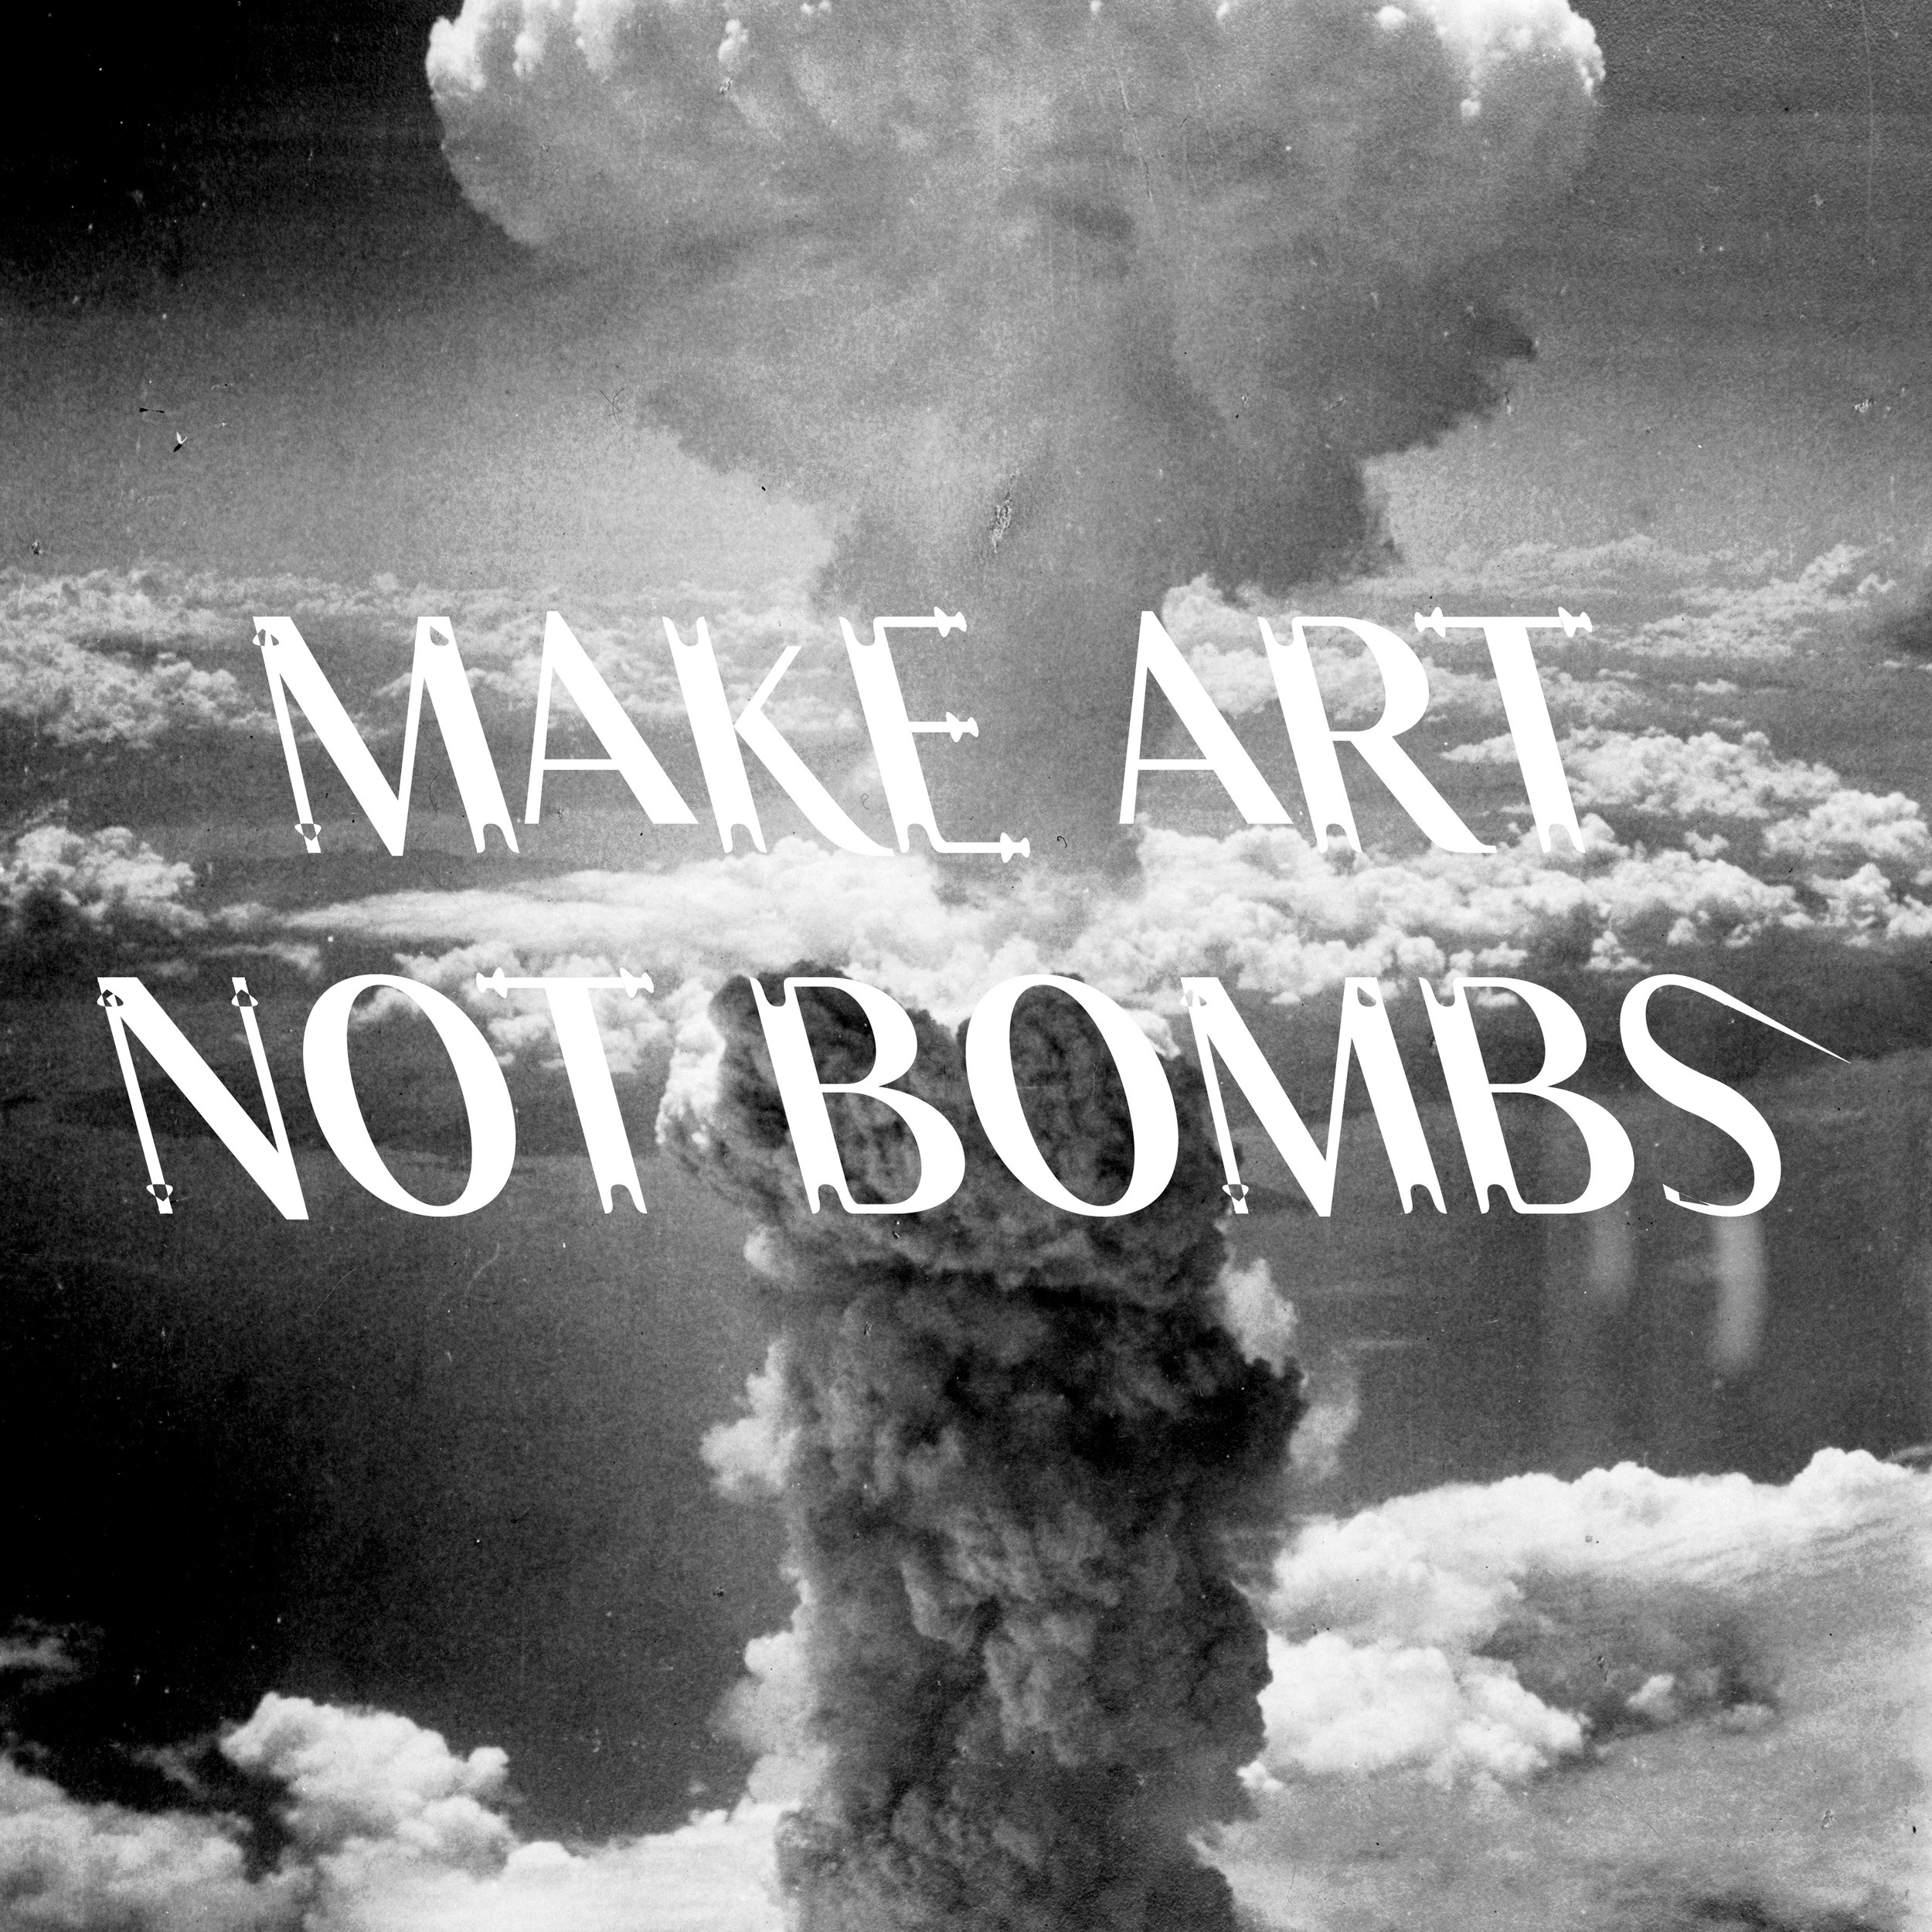 Constantin Demner   @studioelastik   Make Art Not Bombs,  2016 Digital Illustration  For the bomb's artist initiative, Constantin Demner created a bespoke experimental, typeface - LSTK GRETE.   studioelastik.com is a traveling visual art & communication studio with its HQ in Vienna, Austria.